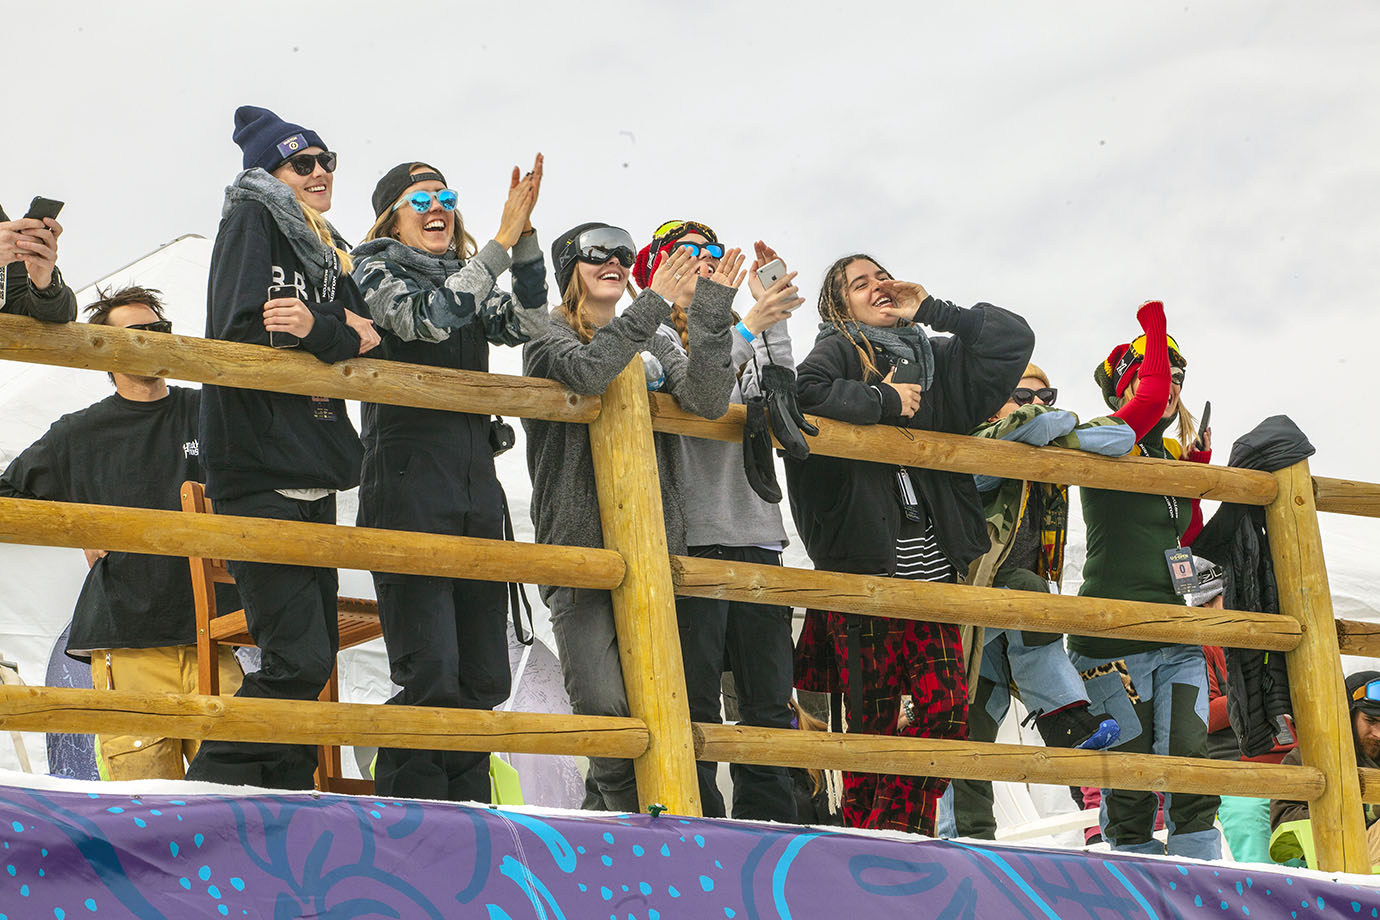 Members of Burton cheer on participants in the women's Slopestyle final on Friday morning.